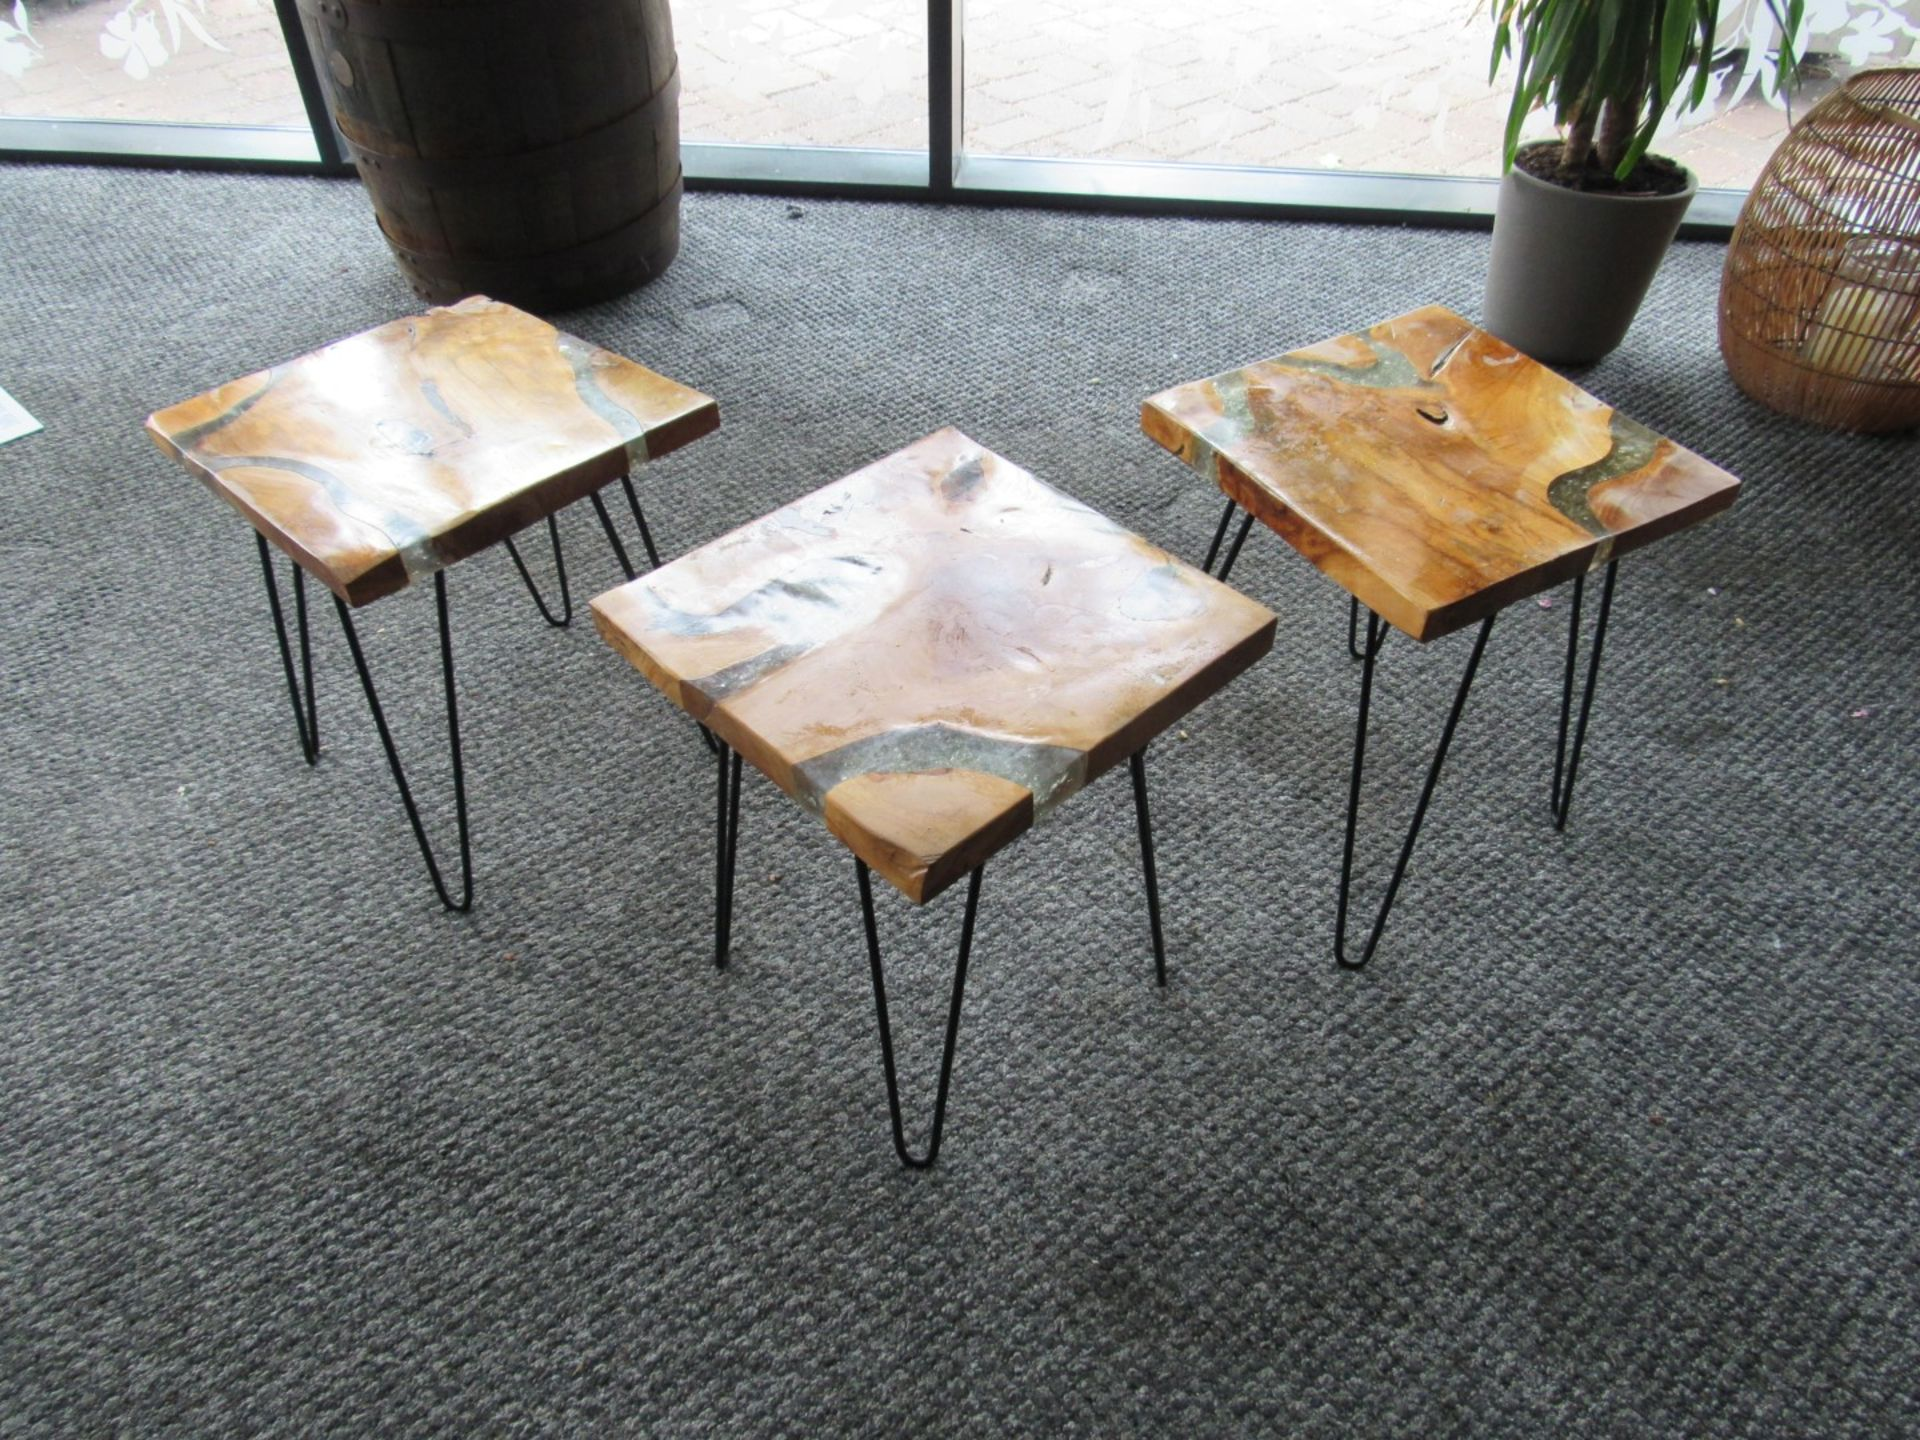 3 Artistic Coffee Tables with Smashed Glass Vein - Image 2 of 4